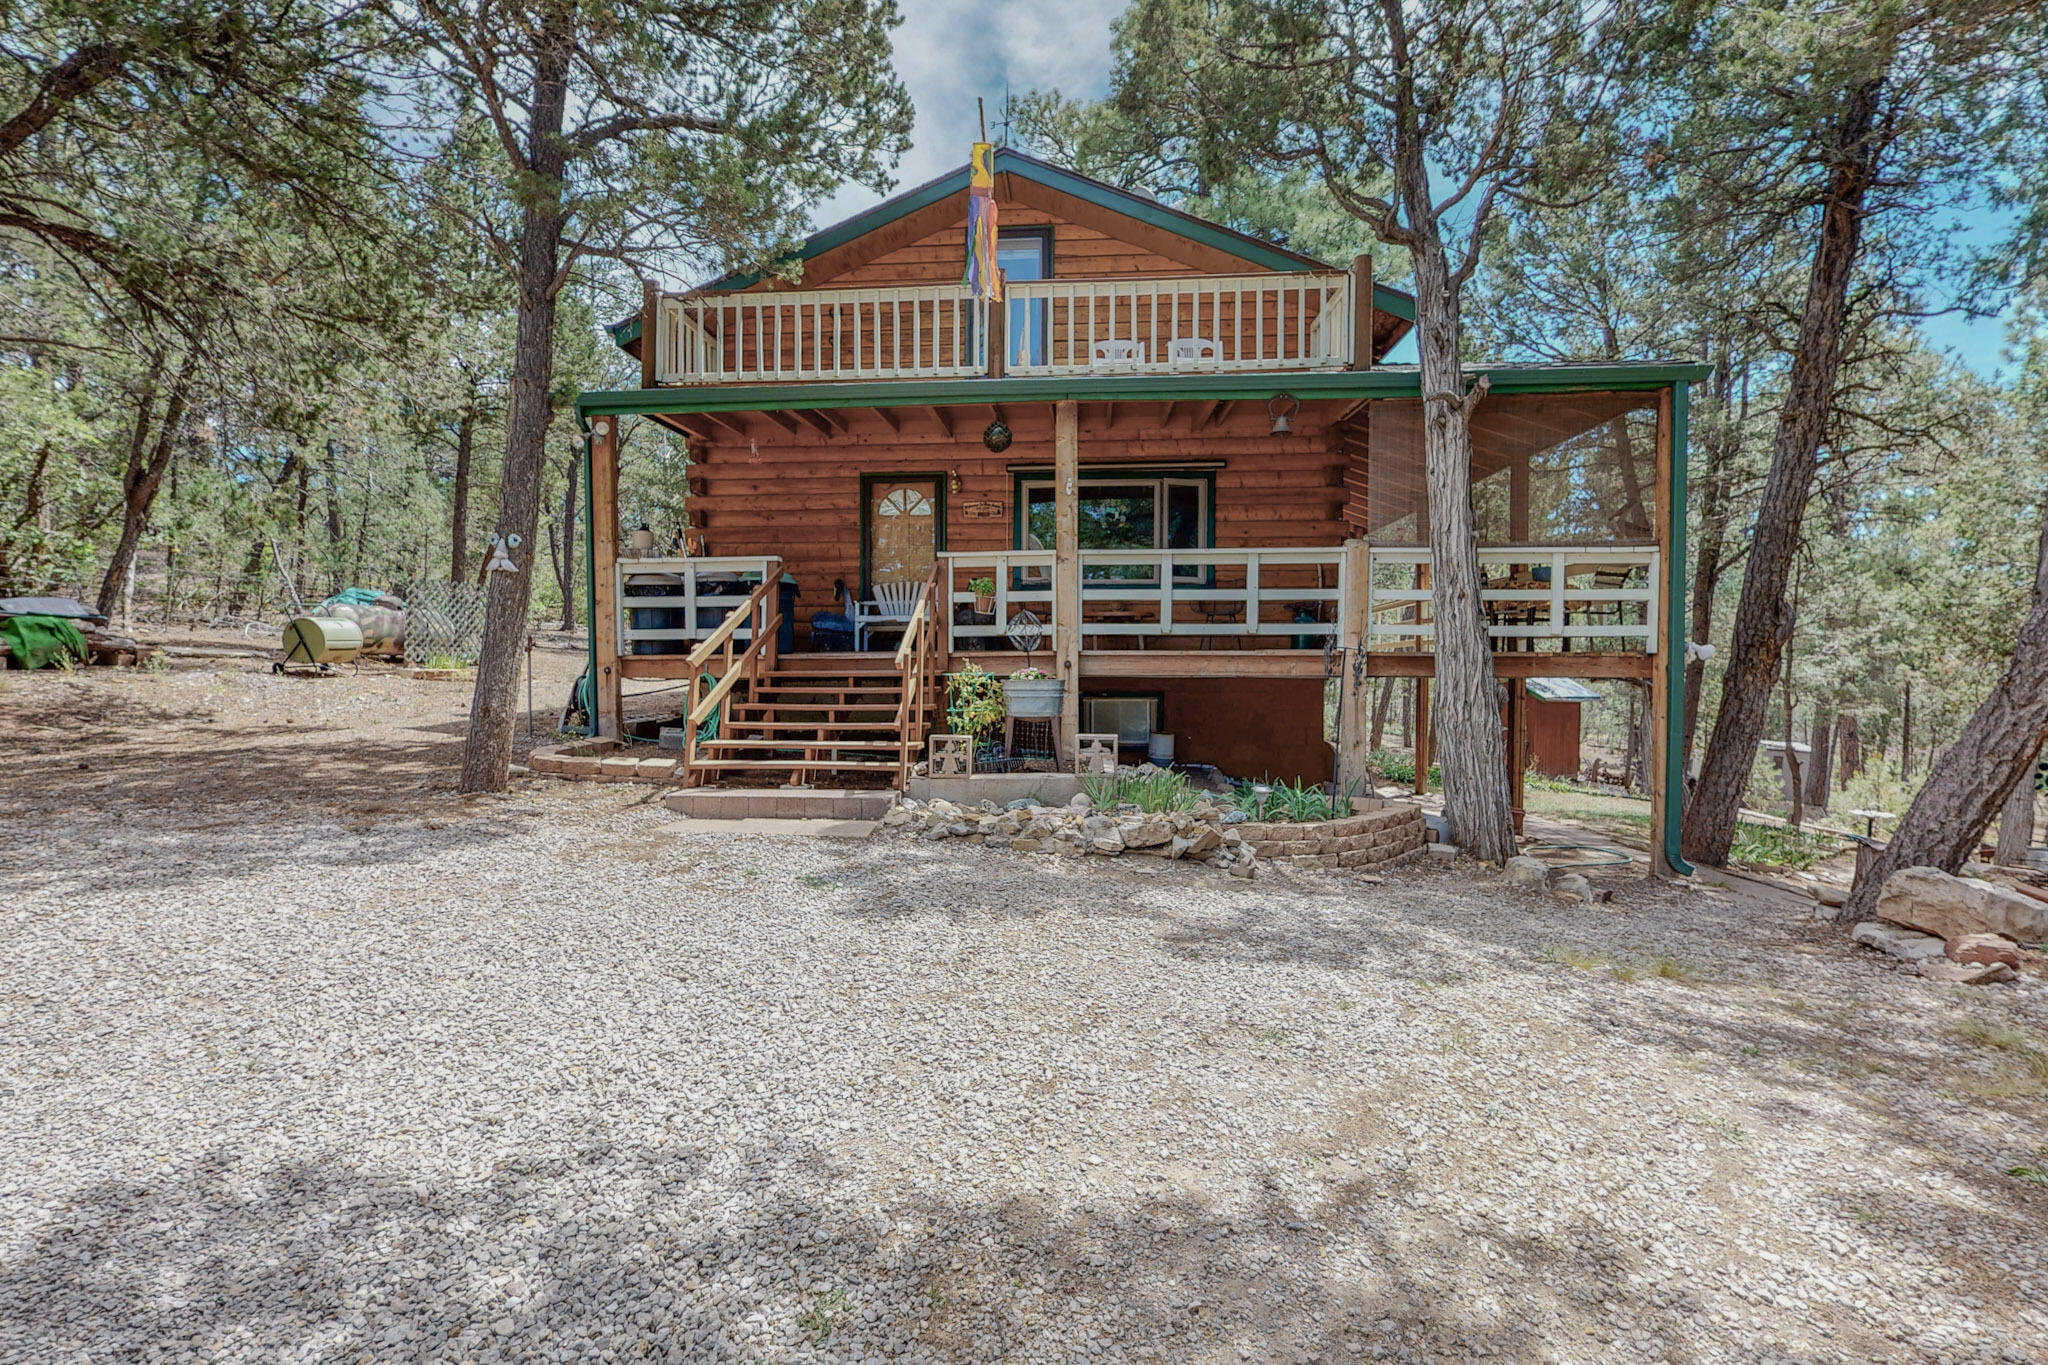 Enjoy peaceful comfort in this cozy cabin in the woods. Three levels offer lots of living options. The main floor has two sides wrapped in decks, there's a balcony on the upper floor, and the walk-out basement has a sheltered patio. The putting green lets you keep up your golf skills and the huge 30x30 detached garage has room for cars, trucks, and toys. Plus a 2-car carport and RV shelter. Garage has an 30 amp RV plug.  Radiant and baseboard heat, gas and wood fireplaces, and double and triple paned windows, keep all the levels warm and toasty. The 848 s/f walk-out basement is fully finished with fireplace, kitchenette, bedroom, walk-in closet and 3/4 bath, with a  separate entrance. (Basement not included in home square footage.) Property is fully fenced with a gated front entry. Enjoy!